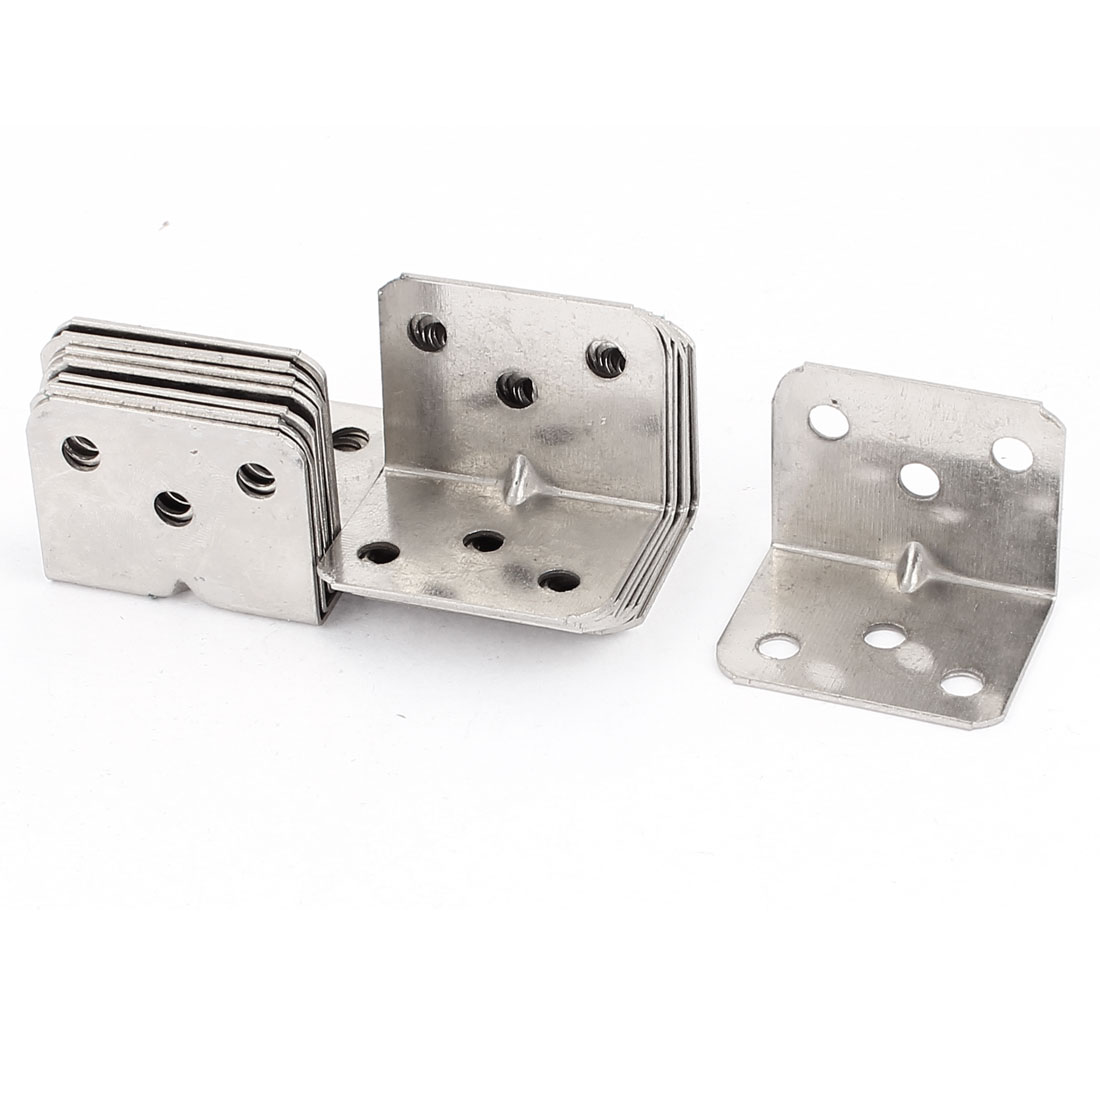 28x28x36mm 90 Degree Furniture Alloy Door Angle Bracket 16 Pcs Silver Tone